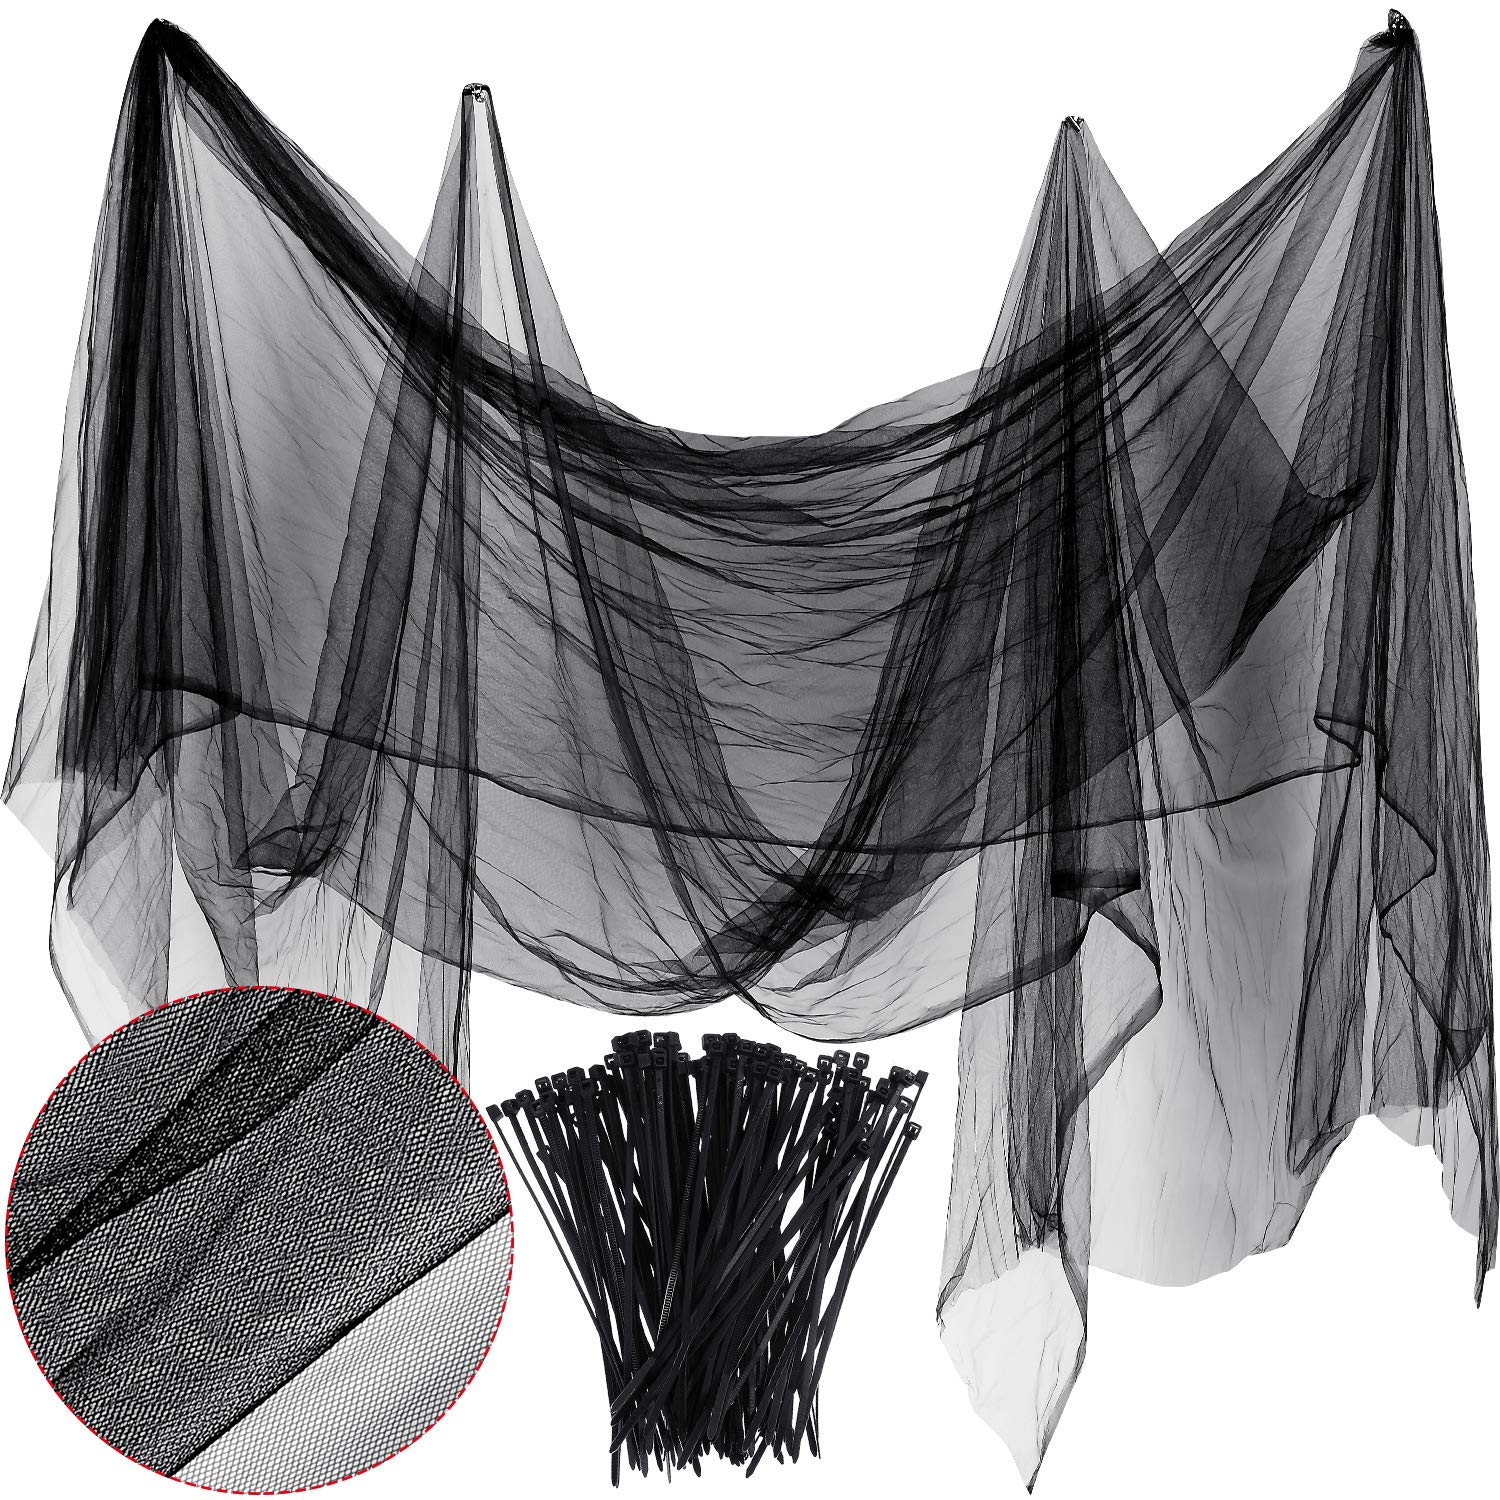 Zonon Bug Insect Mosquito Fly Bird Net Barrier Hunting Blind Plant Protecting Garden Netting 3 m x 4 m, Black